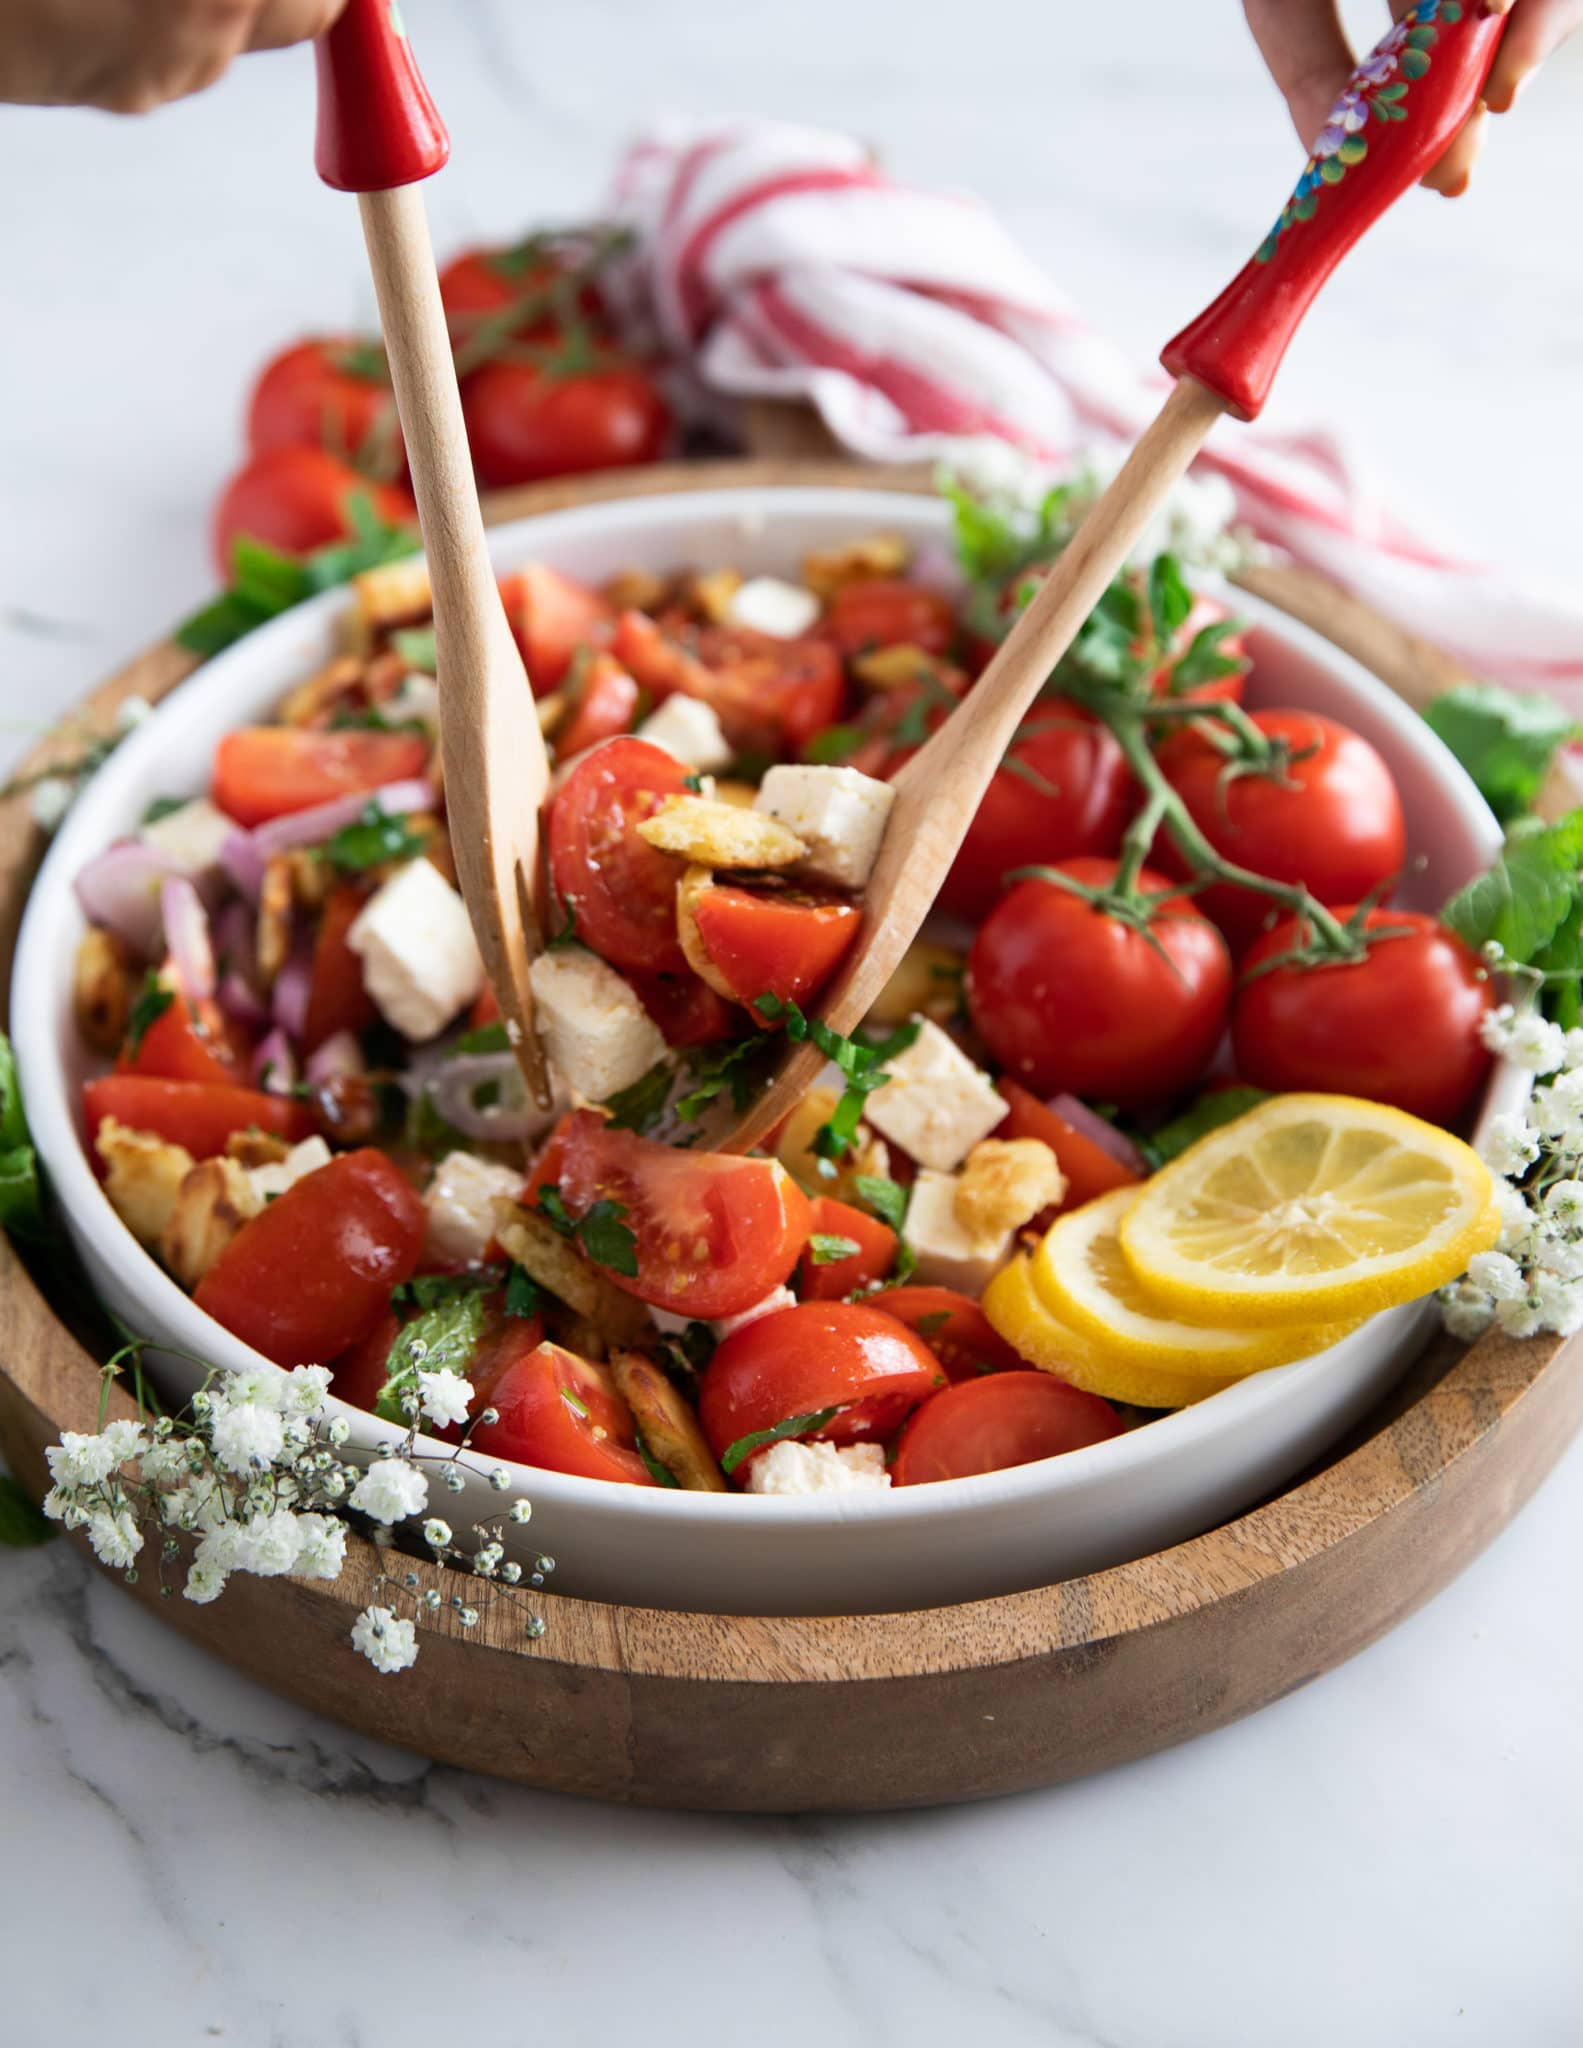 Salad spoons tossing the tomato salad with the simple dressing